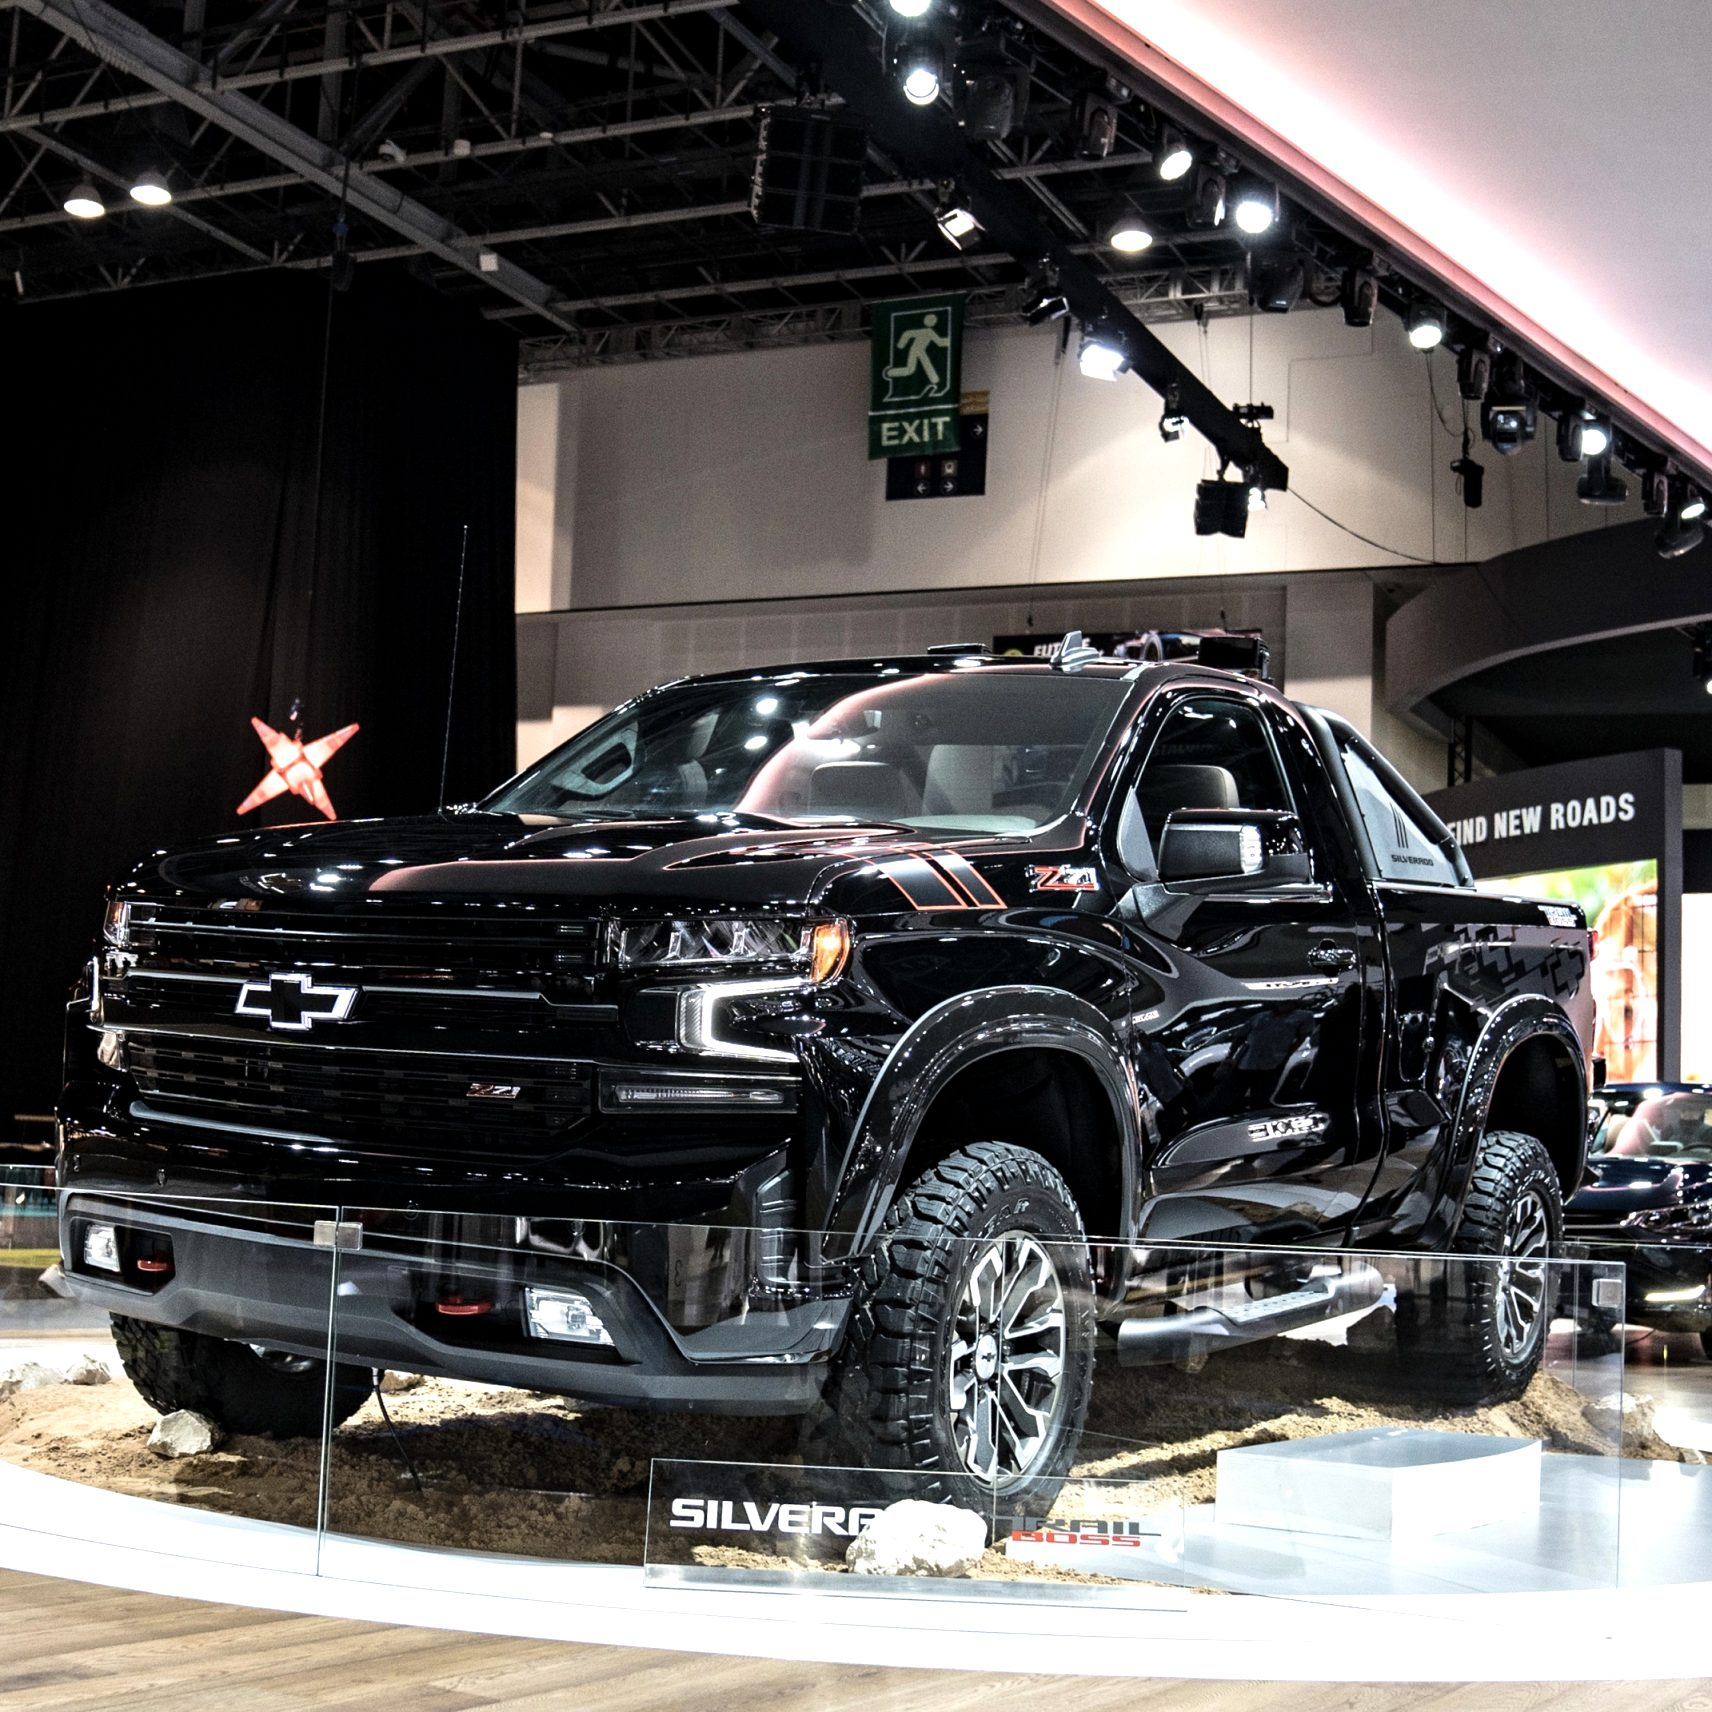 2021 GMC regular cab short bed Release Date and Concept